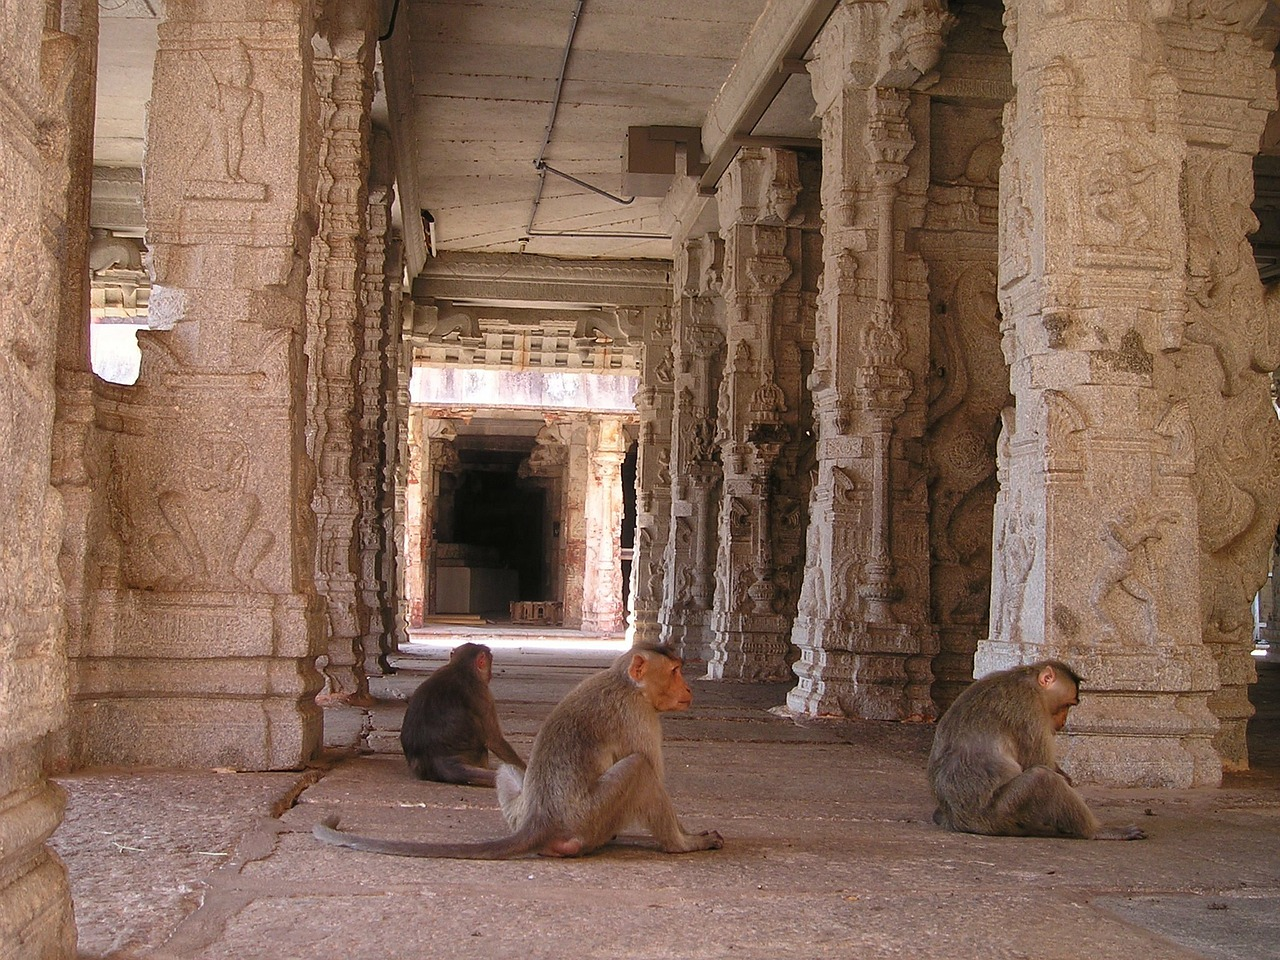 india,ape,temple,ape horde,monkey family,free pictures, free photos, free images, royalty free, free illustrations, public domain